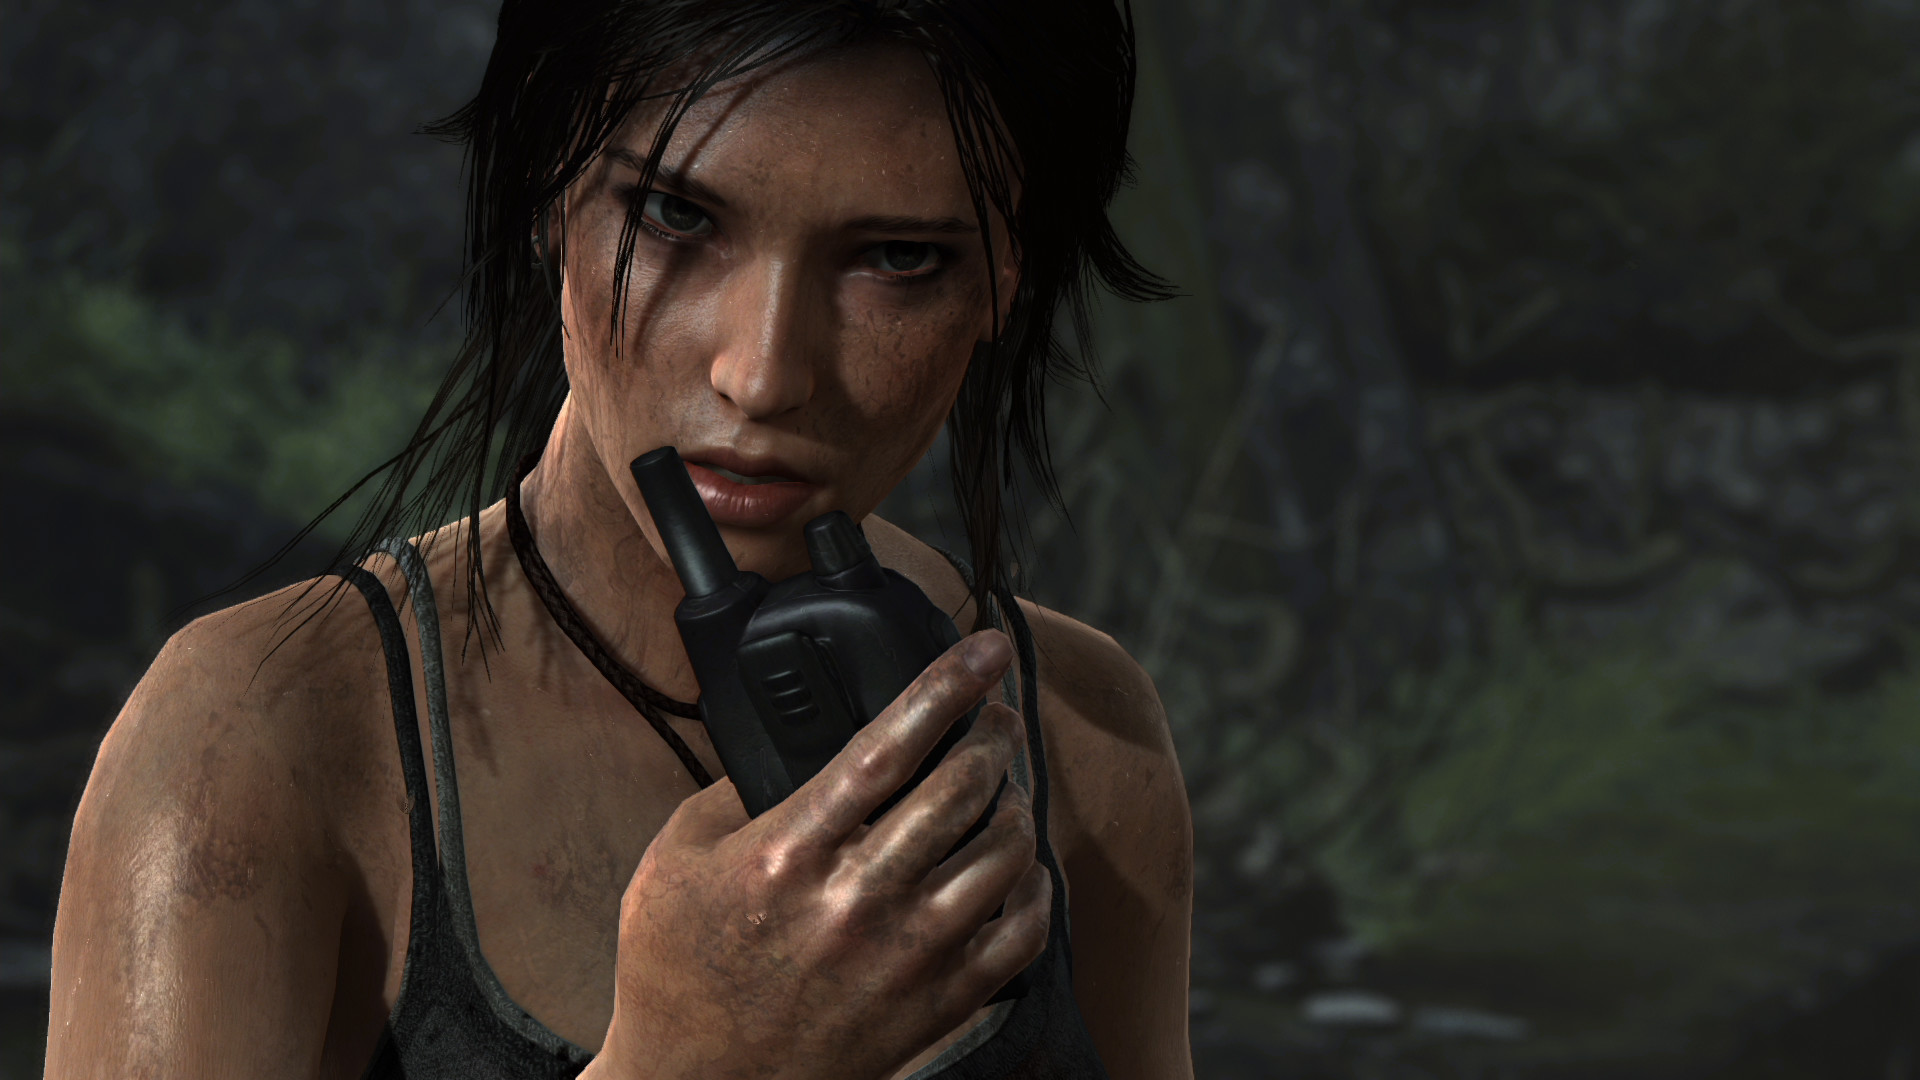 image Tomb raider 2013 nude patch videos 2